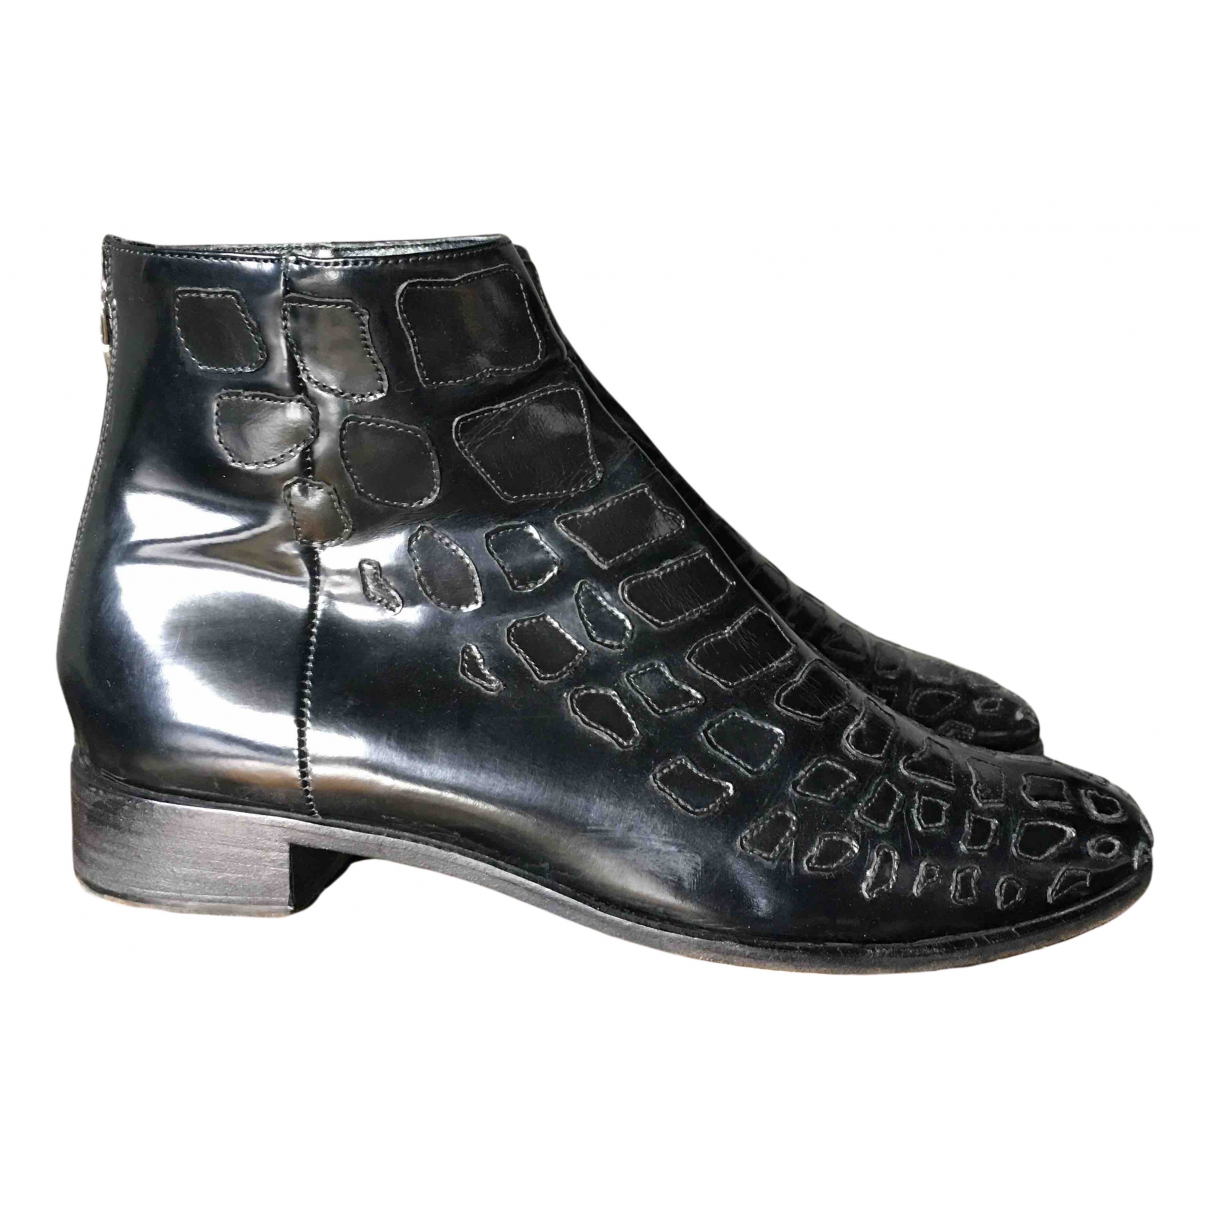 Prada N Black Patent leather Ankle boots for Women 36 EU